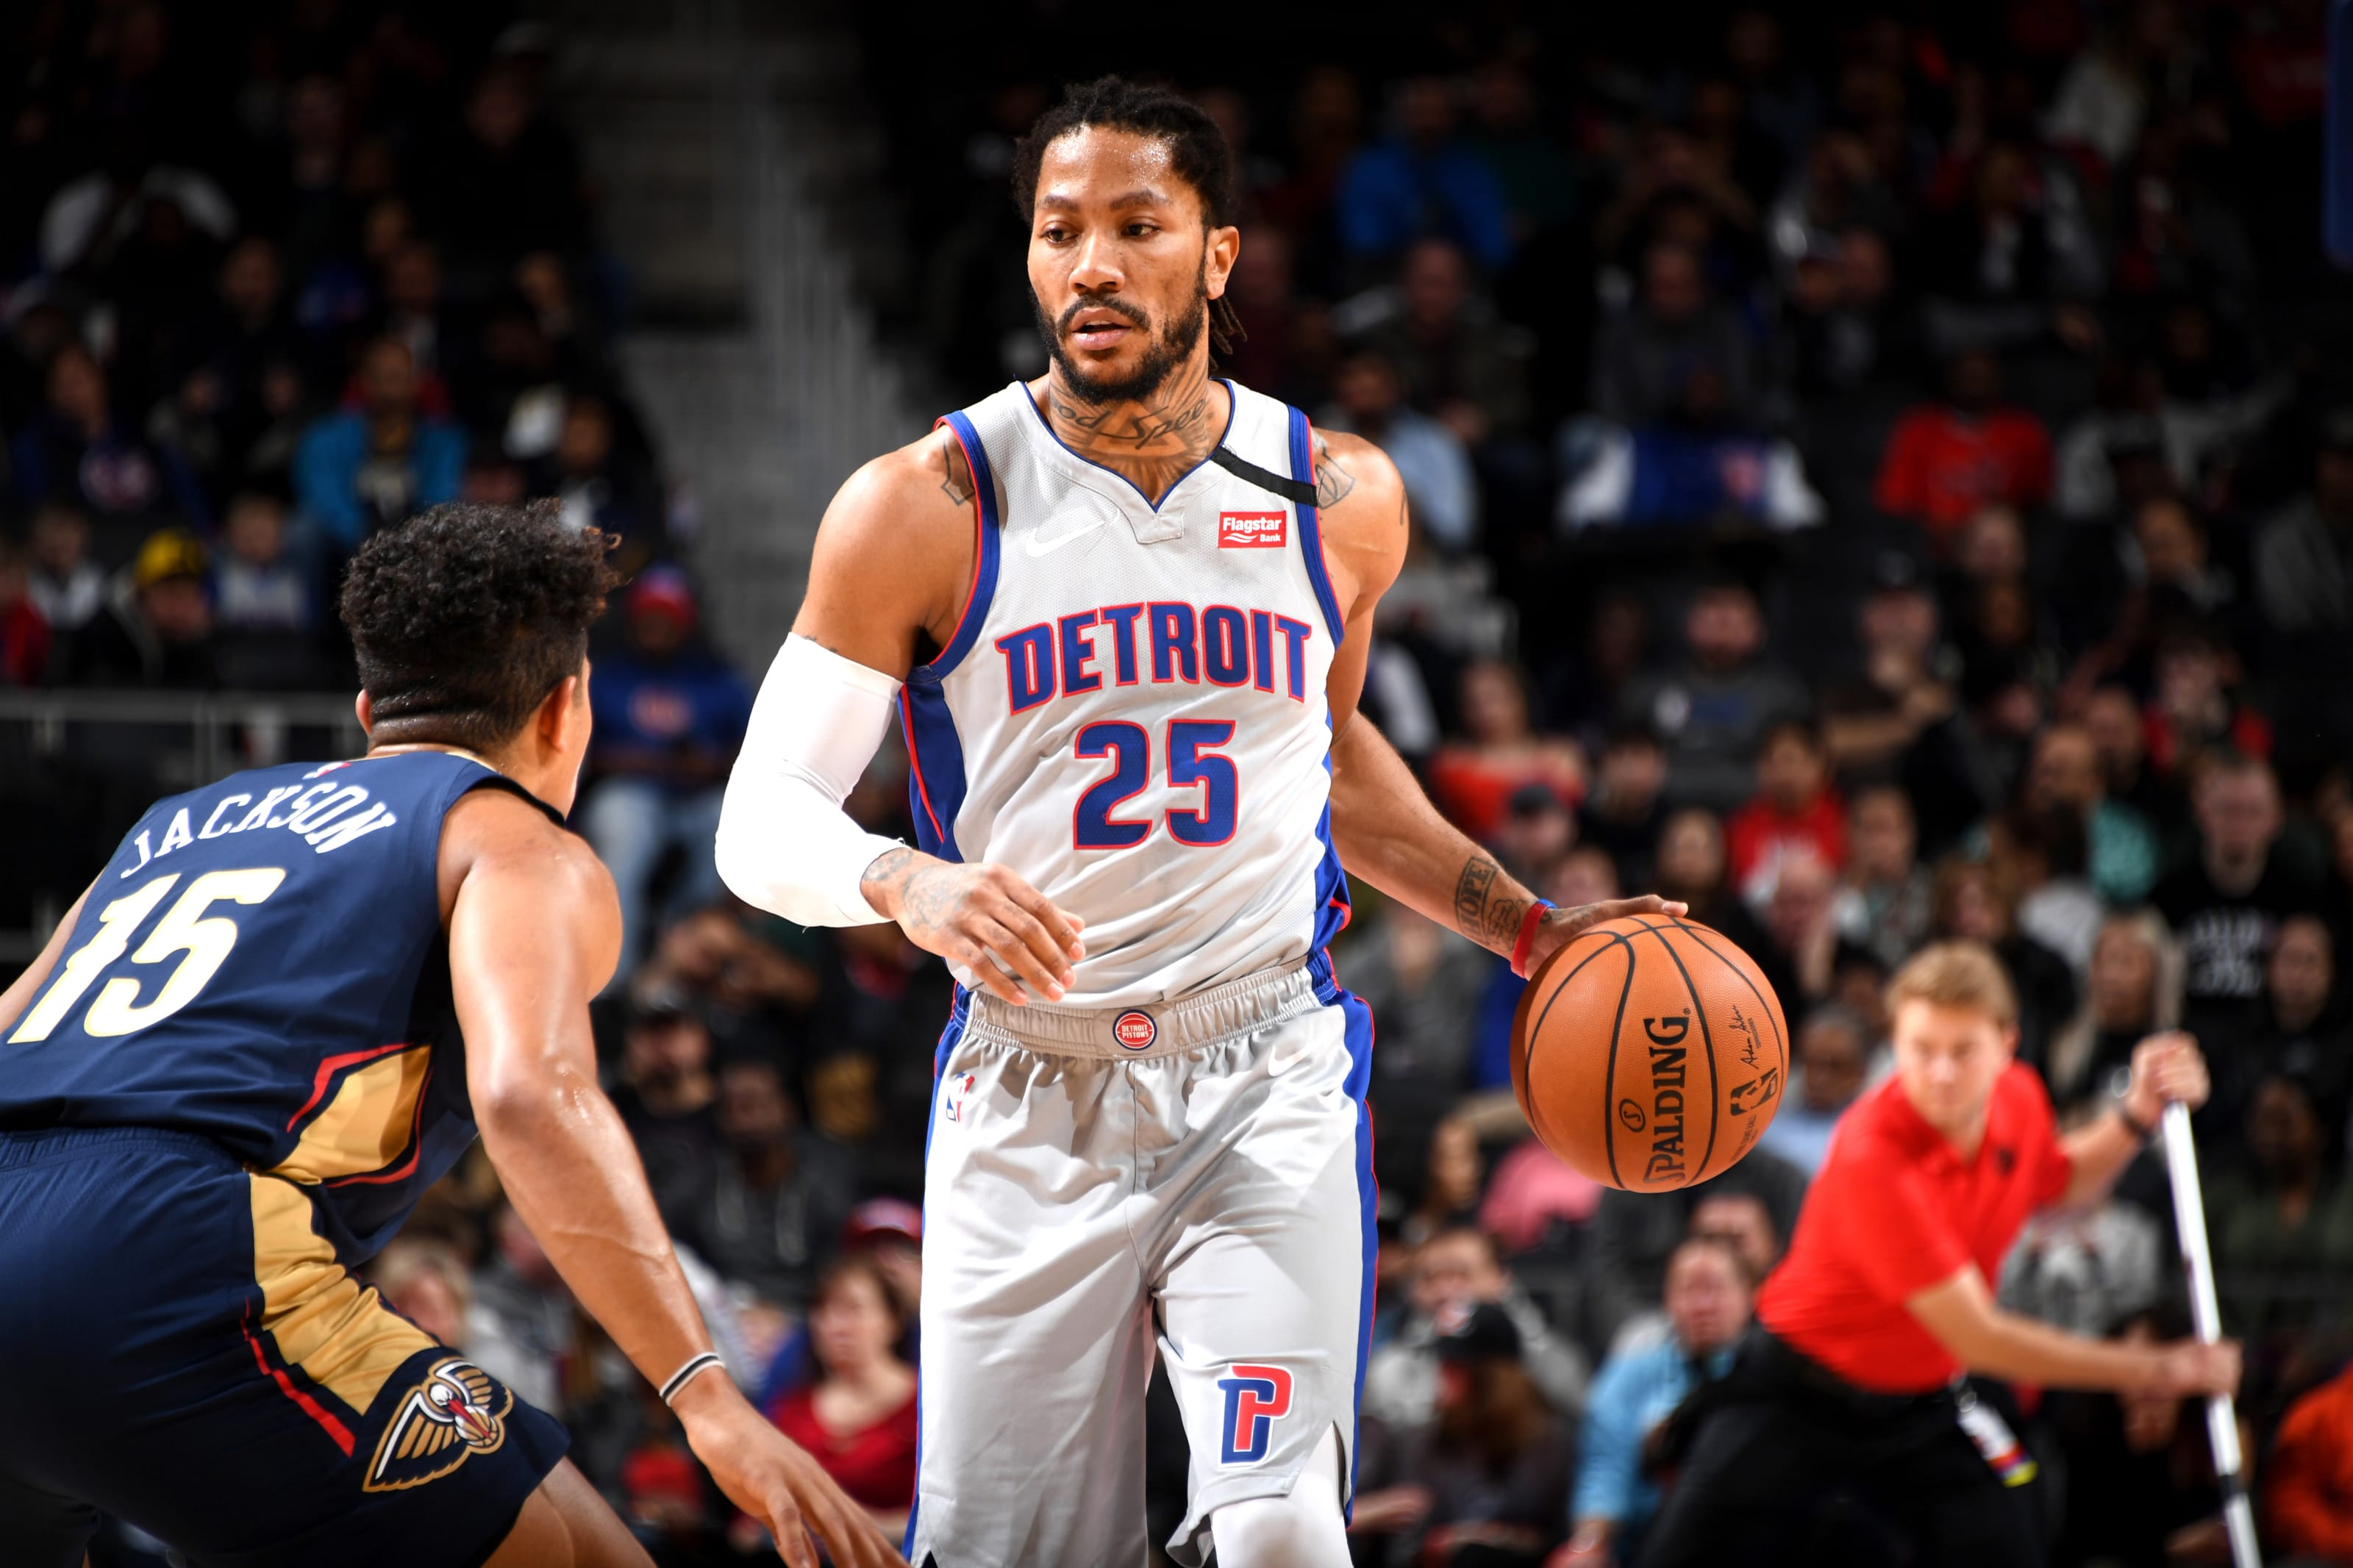 3 takeaways from the Detroit Pistons 117-110 loss to the Pelicans